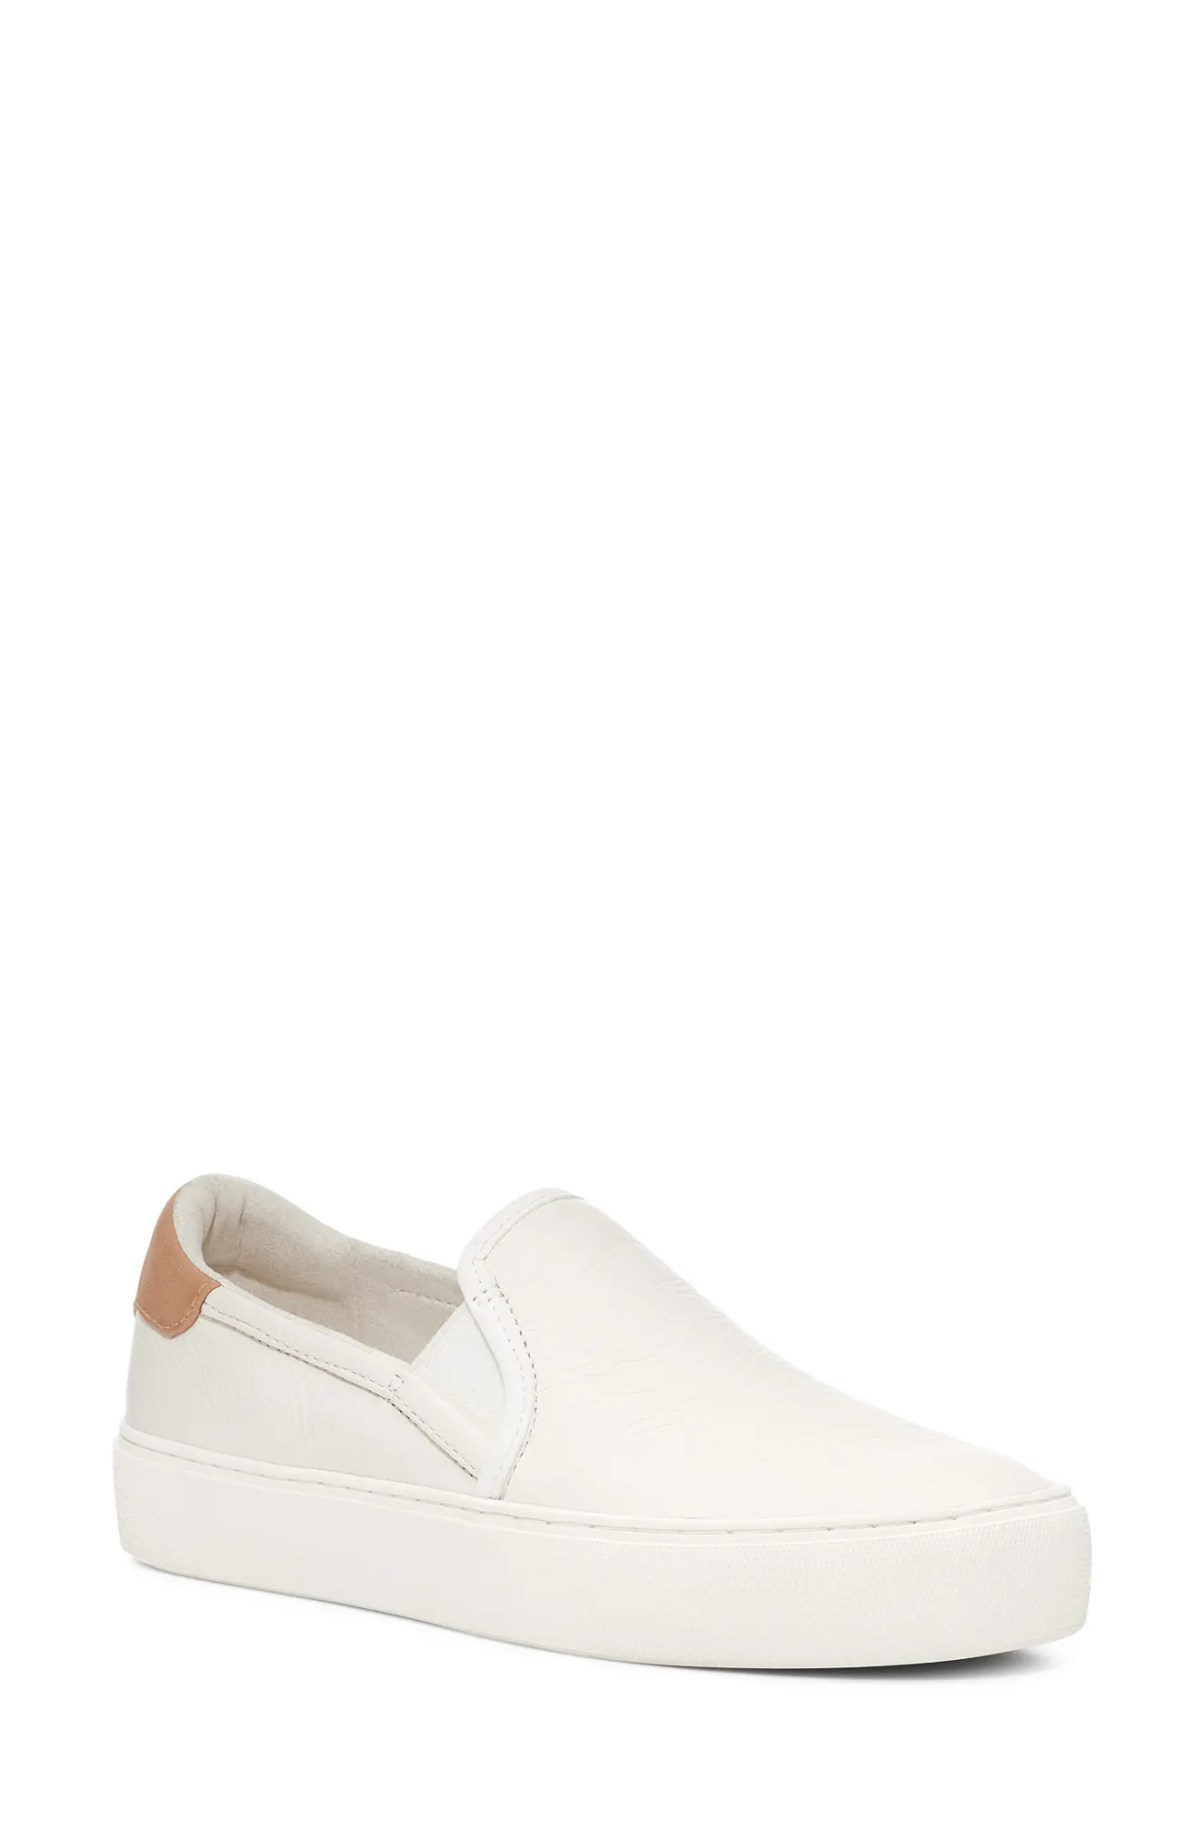 UGG<SUP>®</SUP> Cahlvan Slip-On Sneaker, Main, color, COCONUT MILK LEATHER